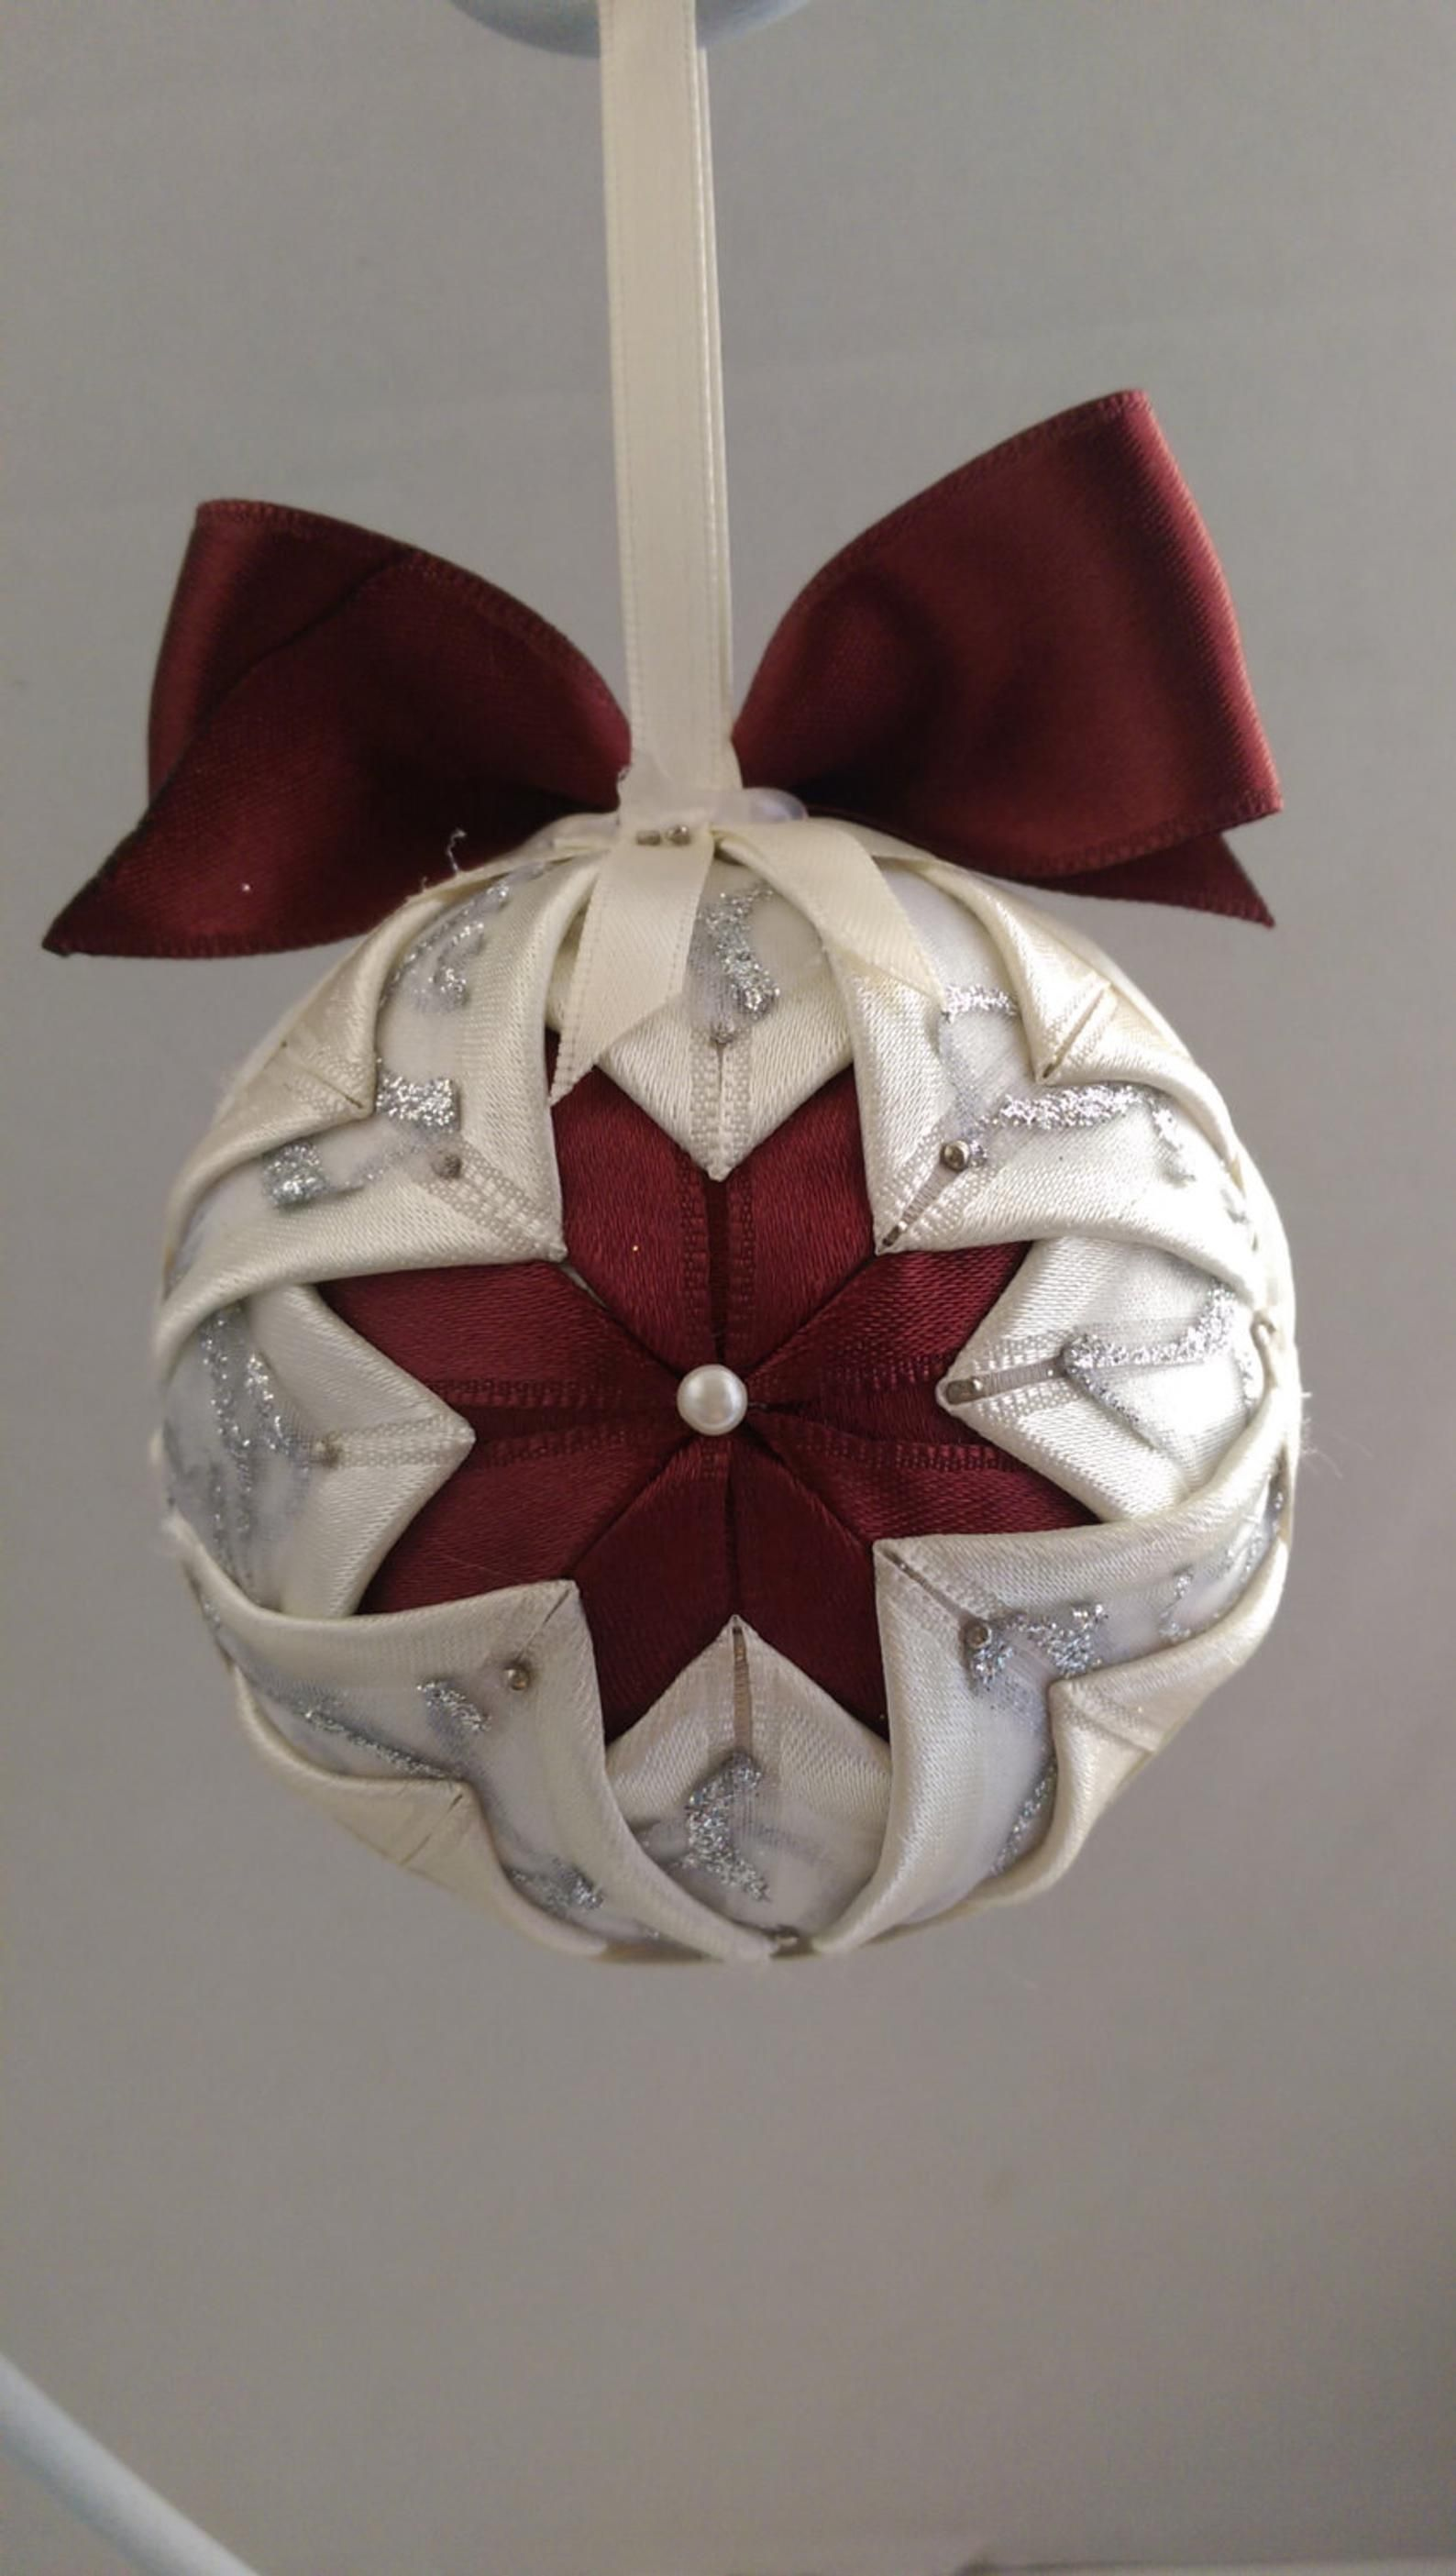 Christmas Quilted Ornament Two Baby Angels Ornament White And Etsy Diy Quilted Christmas Ornaments Fabric Christmas Ornaments Quilted Christmas Ornaments